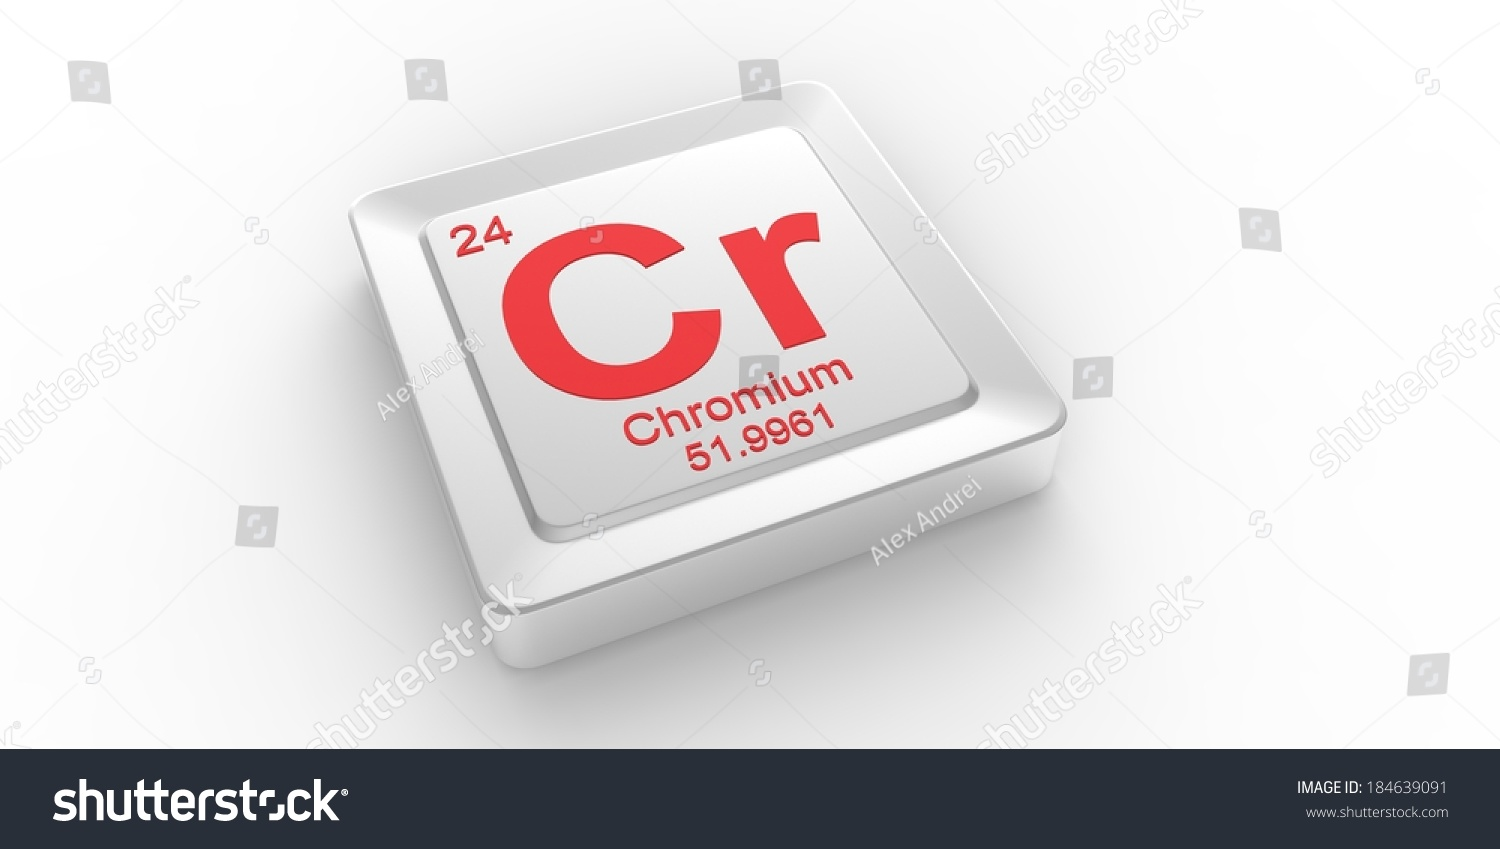 What is the symbol for chromium gallery symbol and sign ideas cr symbol 24 material chromium chemical stock illustration cr symbol 24 material for chromium chemical element buycottarizona